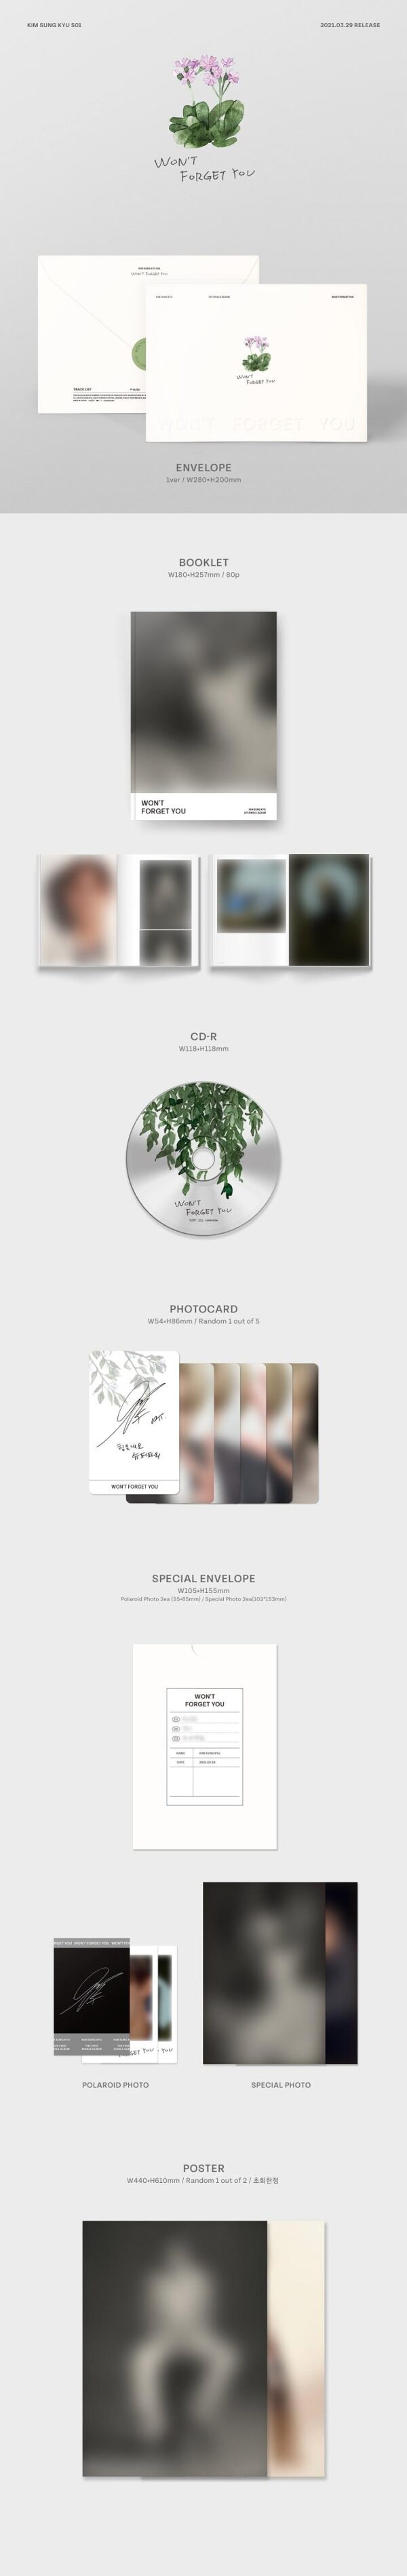 KIM SUNG KYU Single Wont Forget You Poster